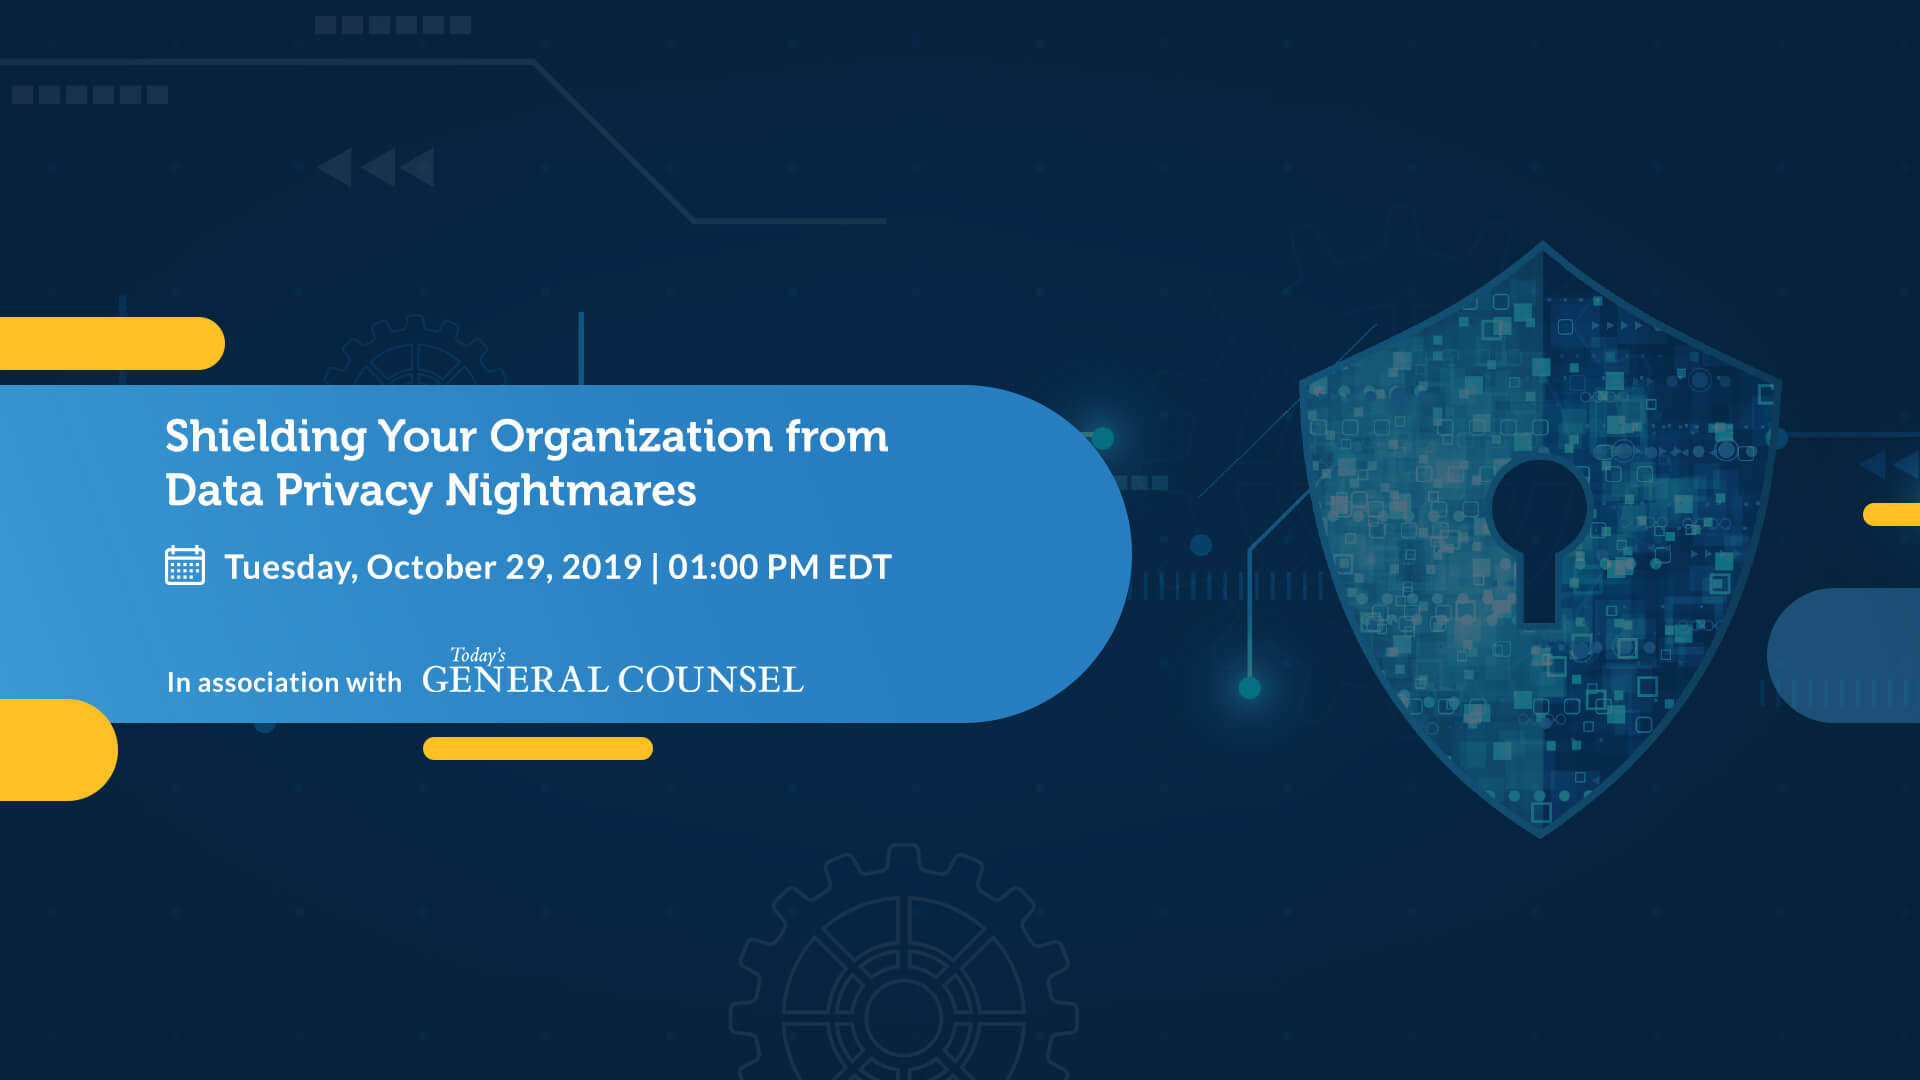 Shielding Your Organization from Data Privacy Nightmares